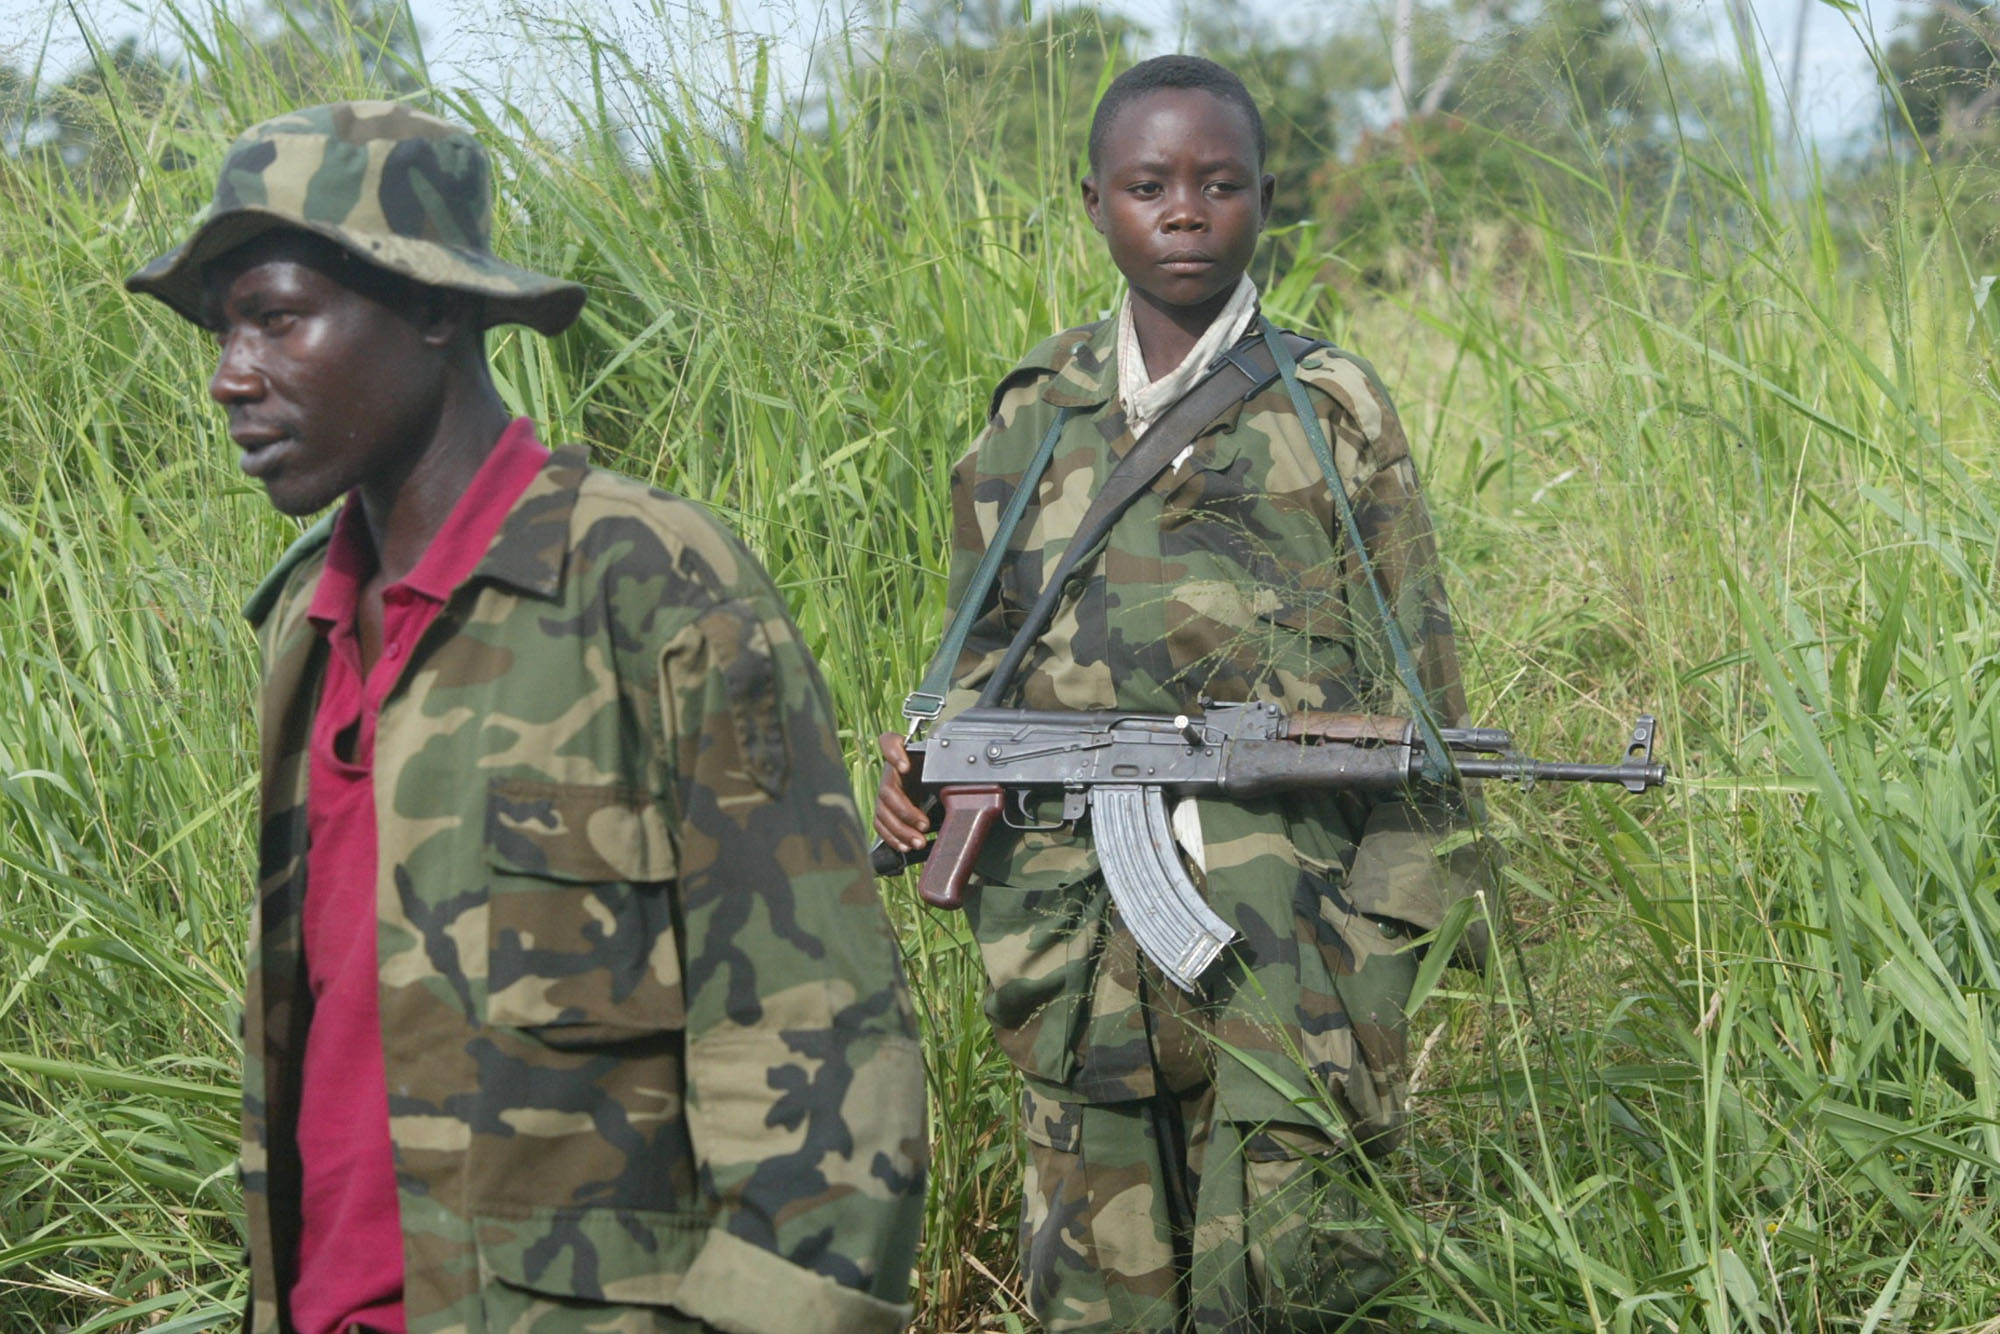 Already Wanted by ICC, Congo Warlord Ntaganda Continues to Use Child Soldiers